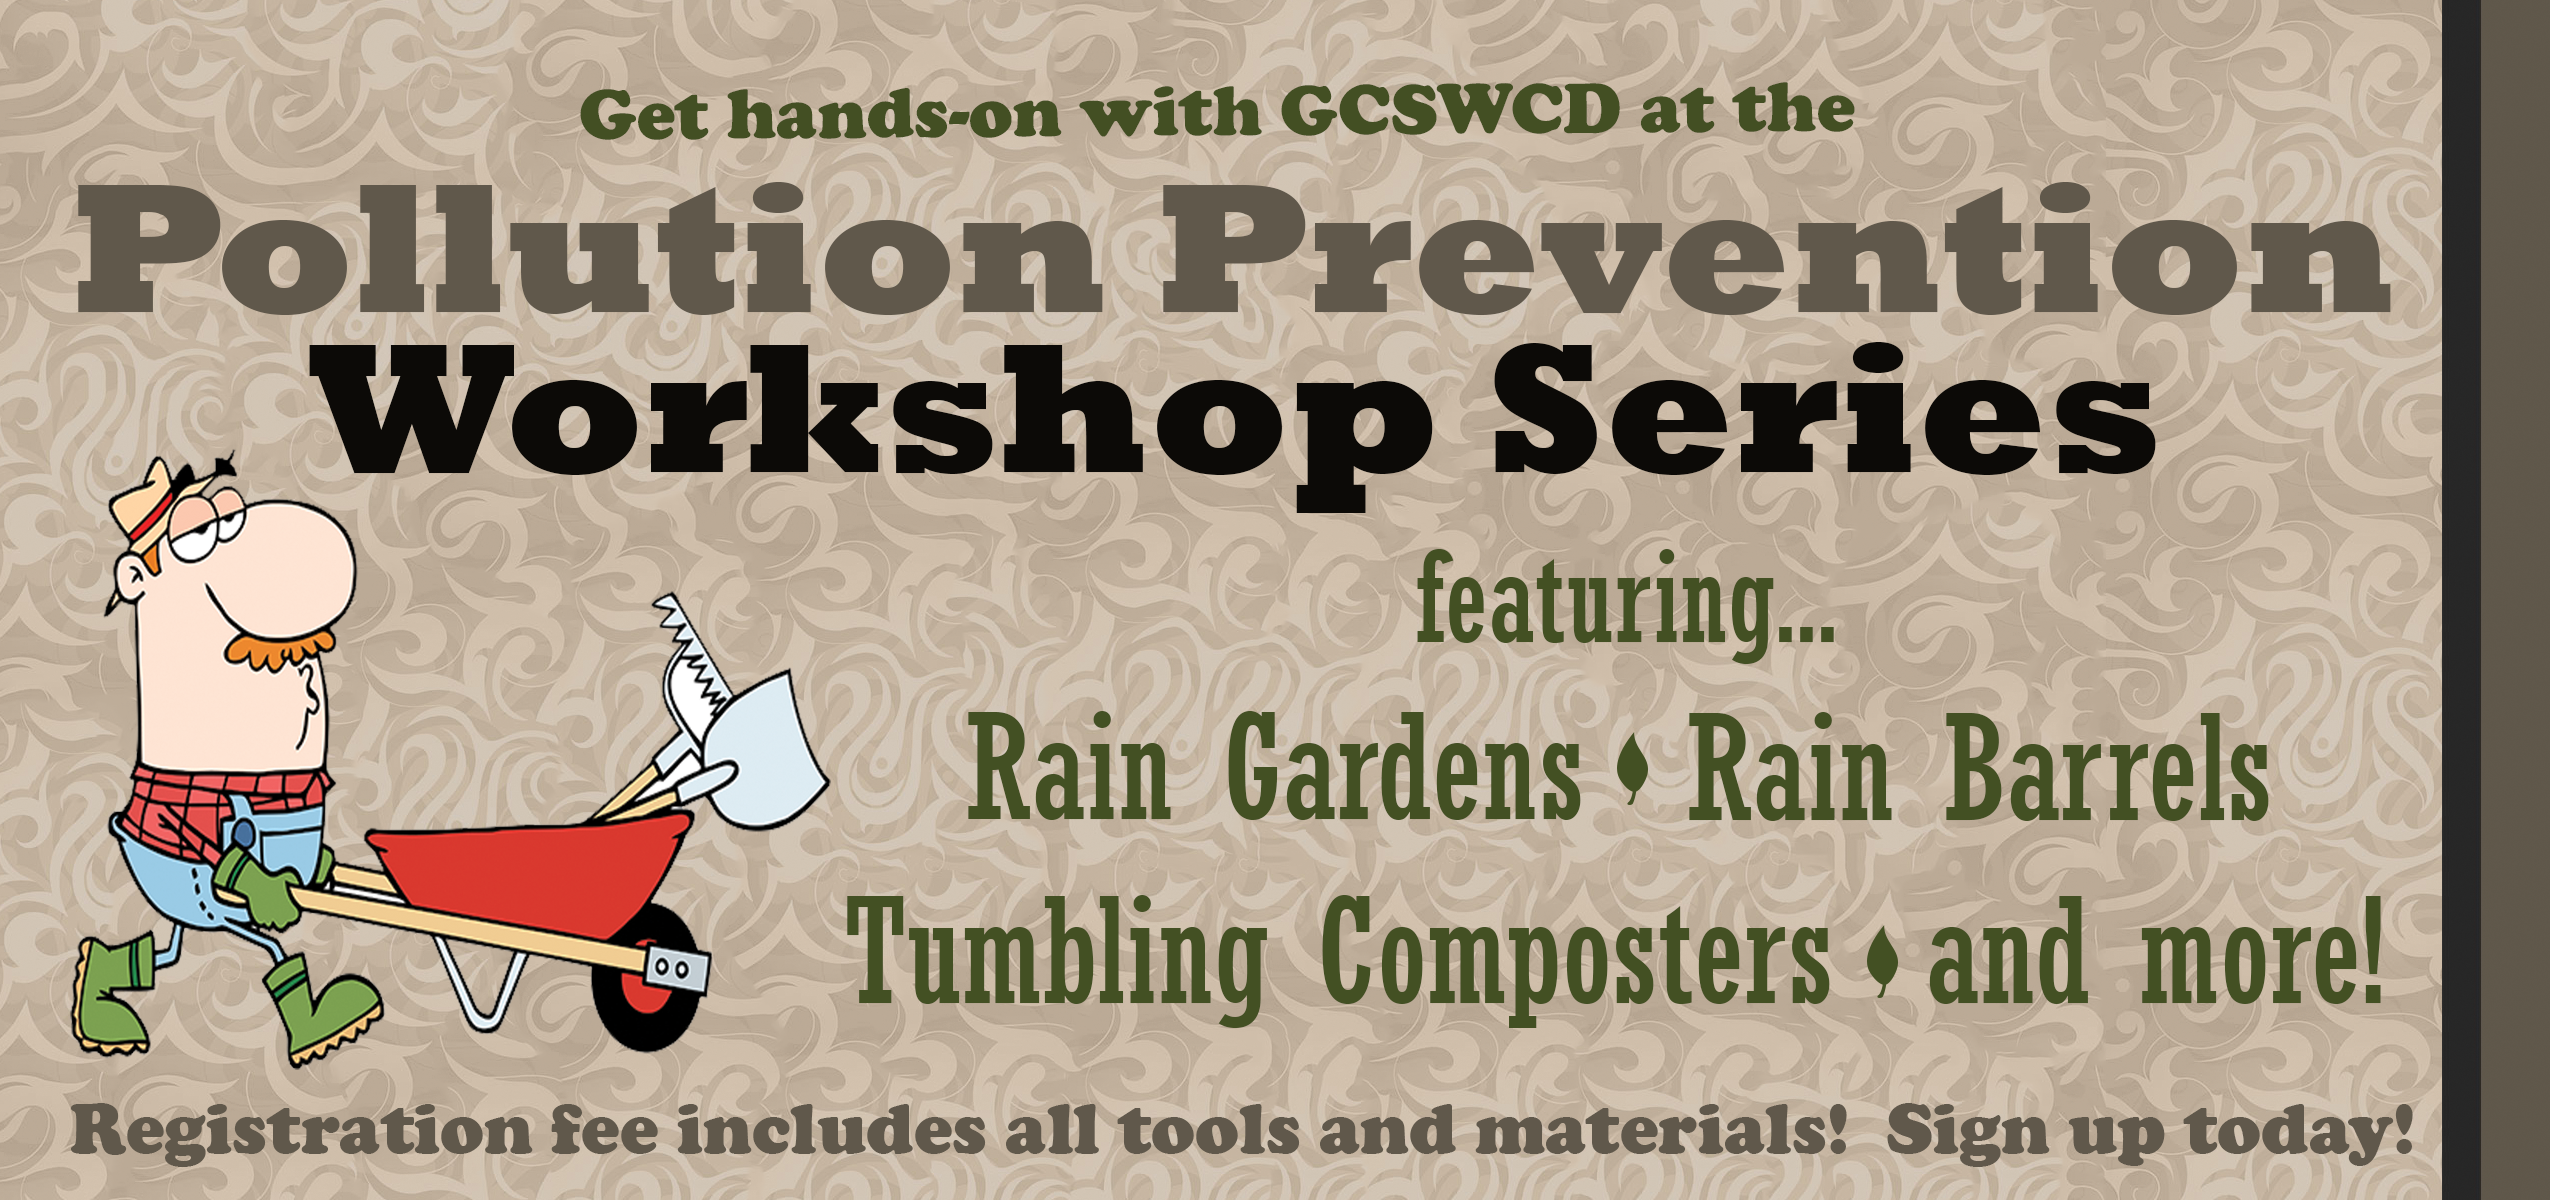 Pollution Prevention Workshop Series